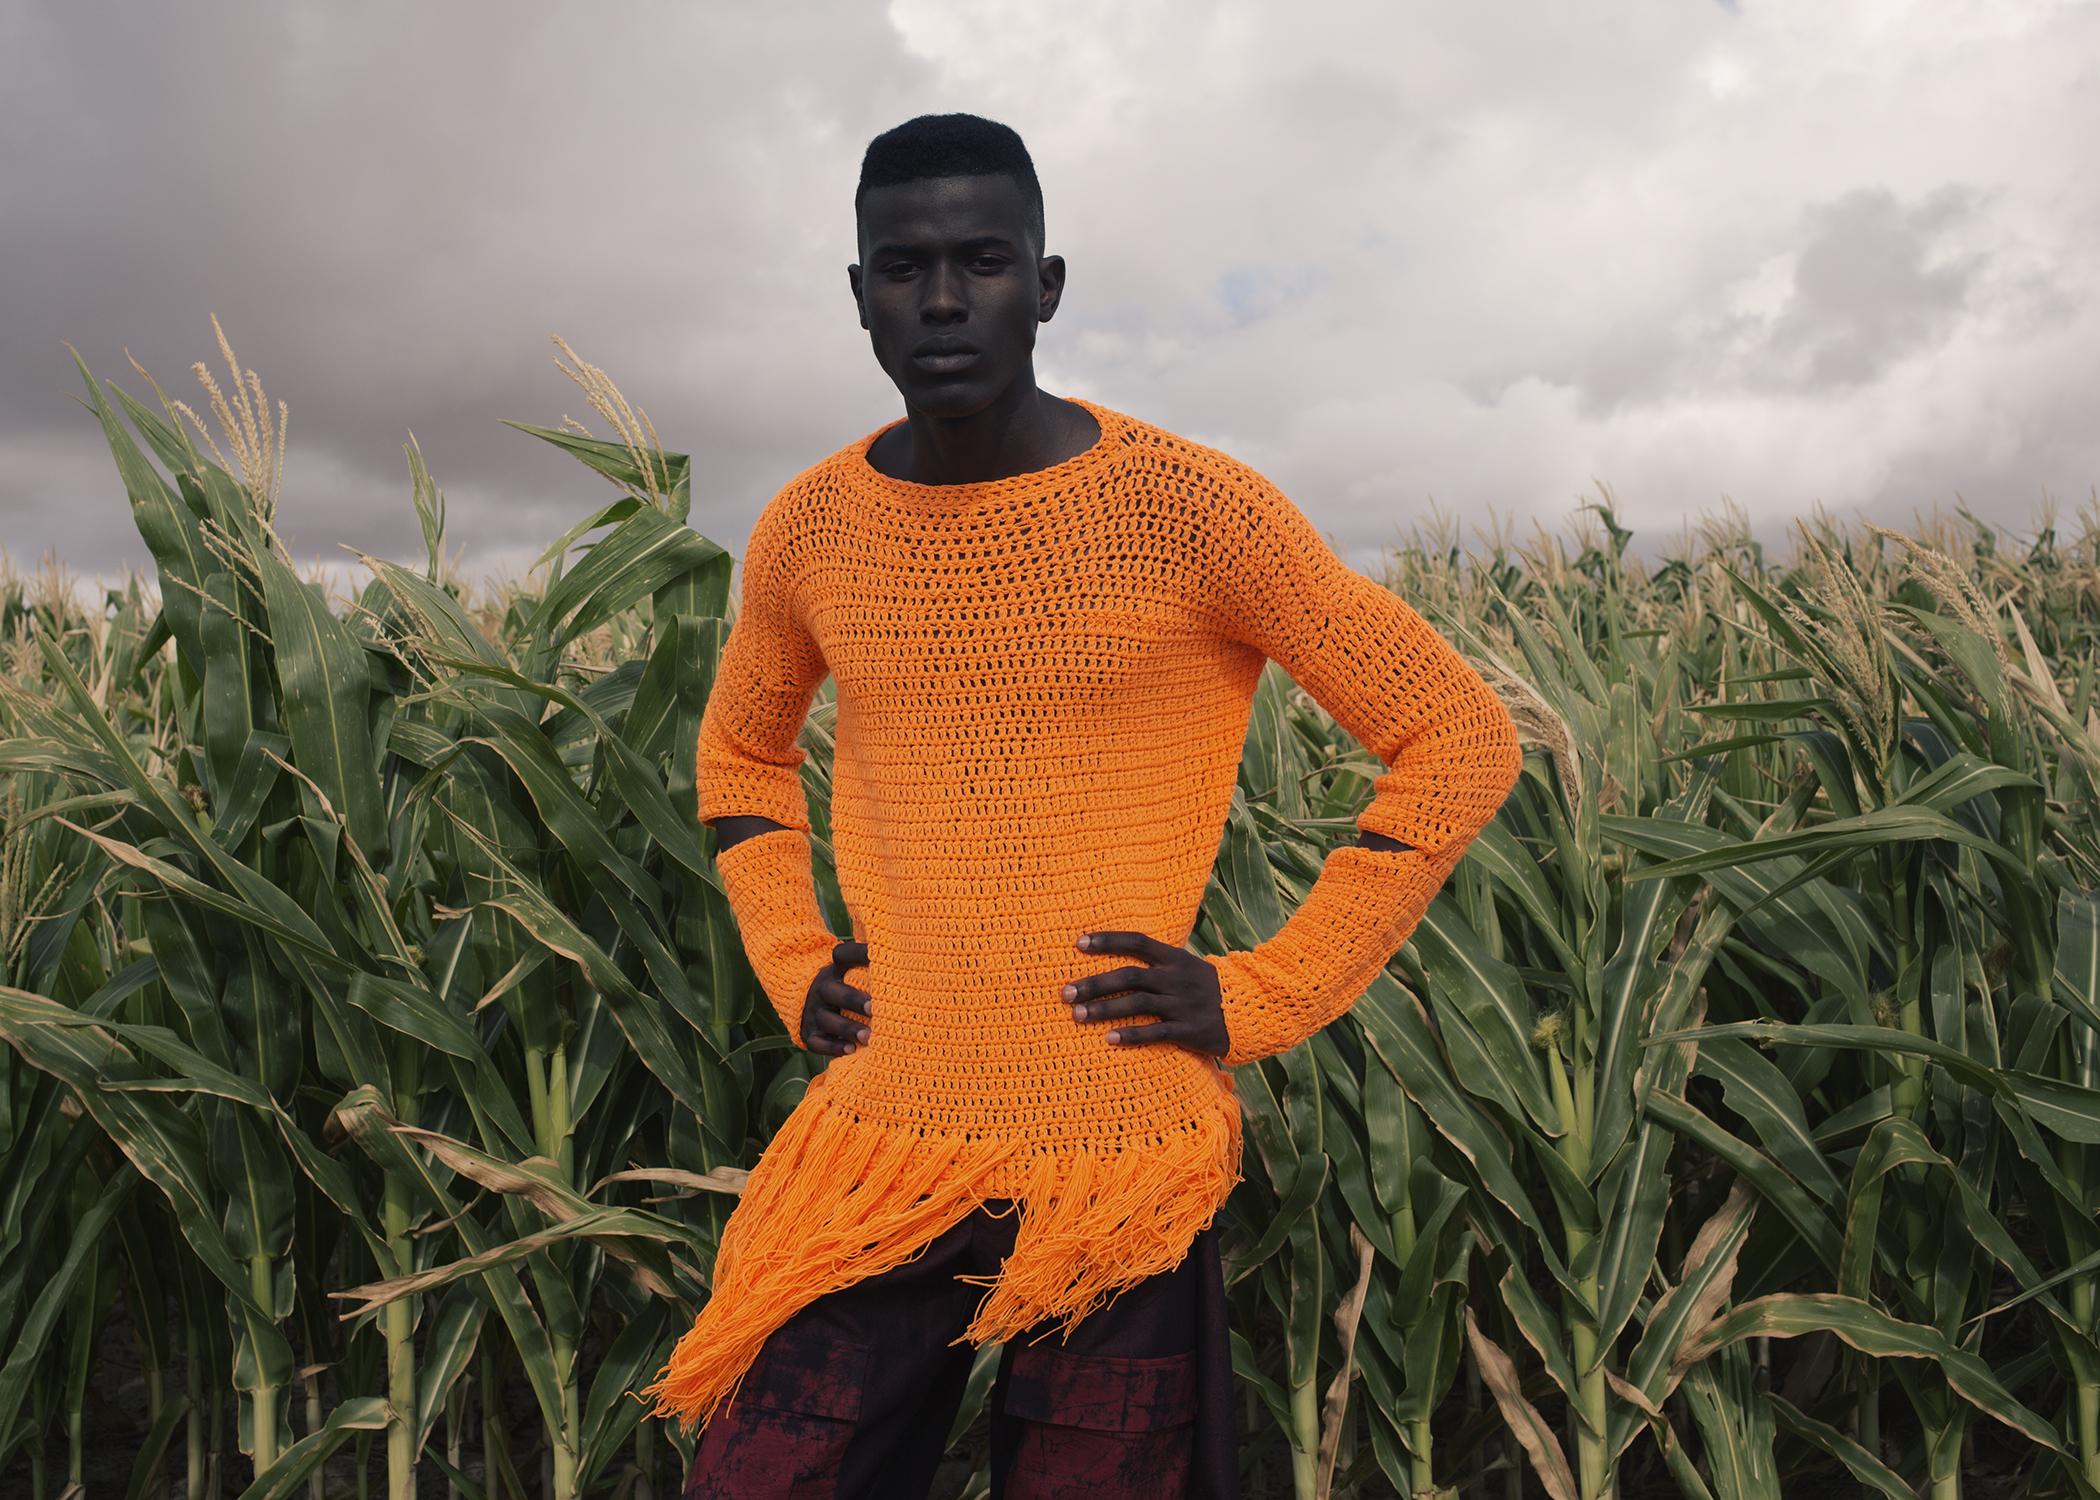 S.E.N.S.E.S.  Orange Culture A/W 16:17 Lookbook  Collaborations:  Jewelry: Neon Zinn  Shoes: Maxivive  Bags: Nodrog Street  Photography: Travys Owen at One League Agency  Styling/Art Direction: Gabrielle Kannemeyer  Models: Kwen Maye, Ronald Agbazagan, Kevwe, and Samuel Mukhuwana at 20 Model Management